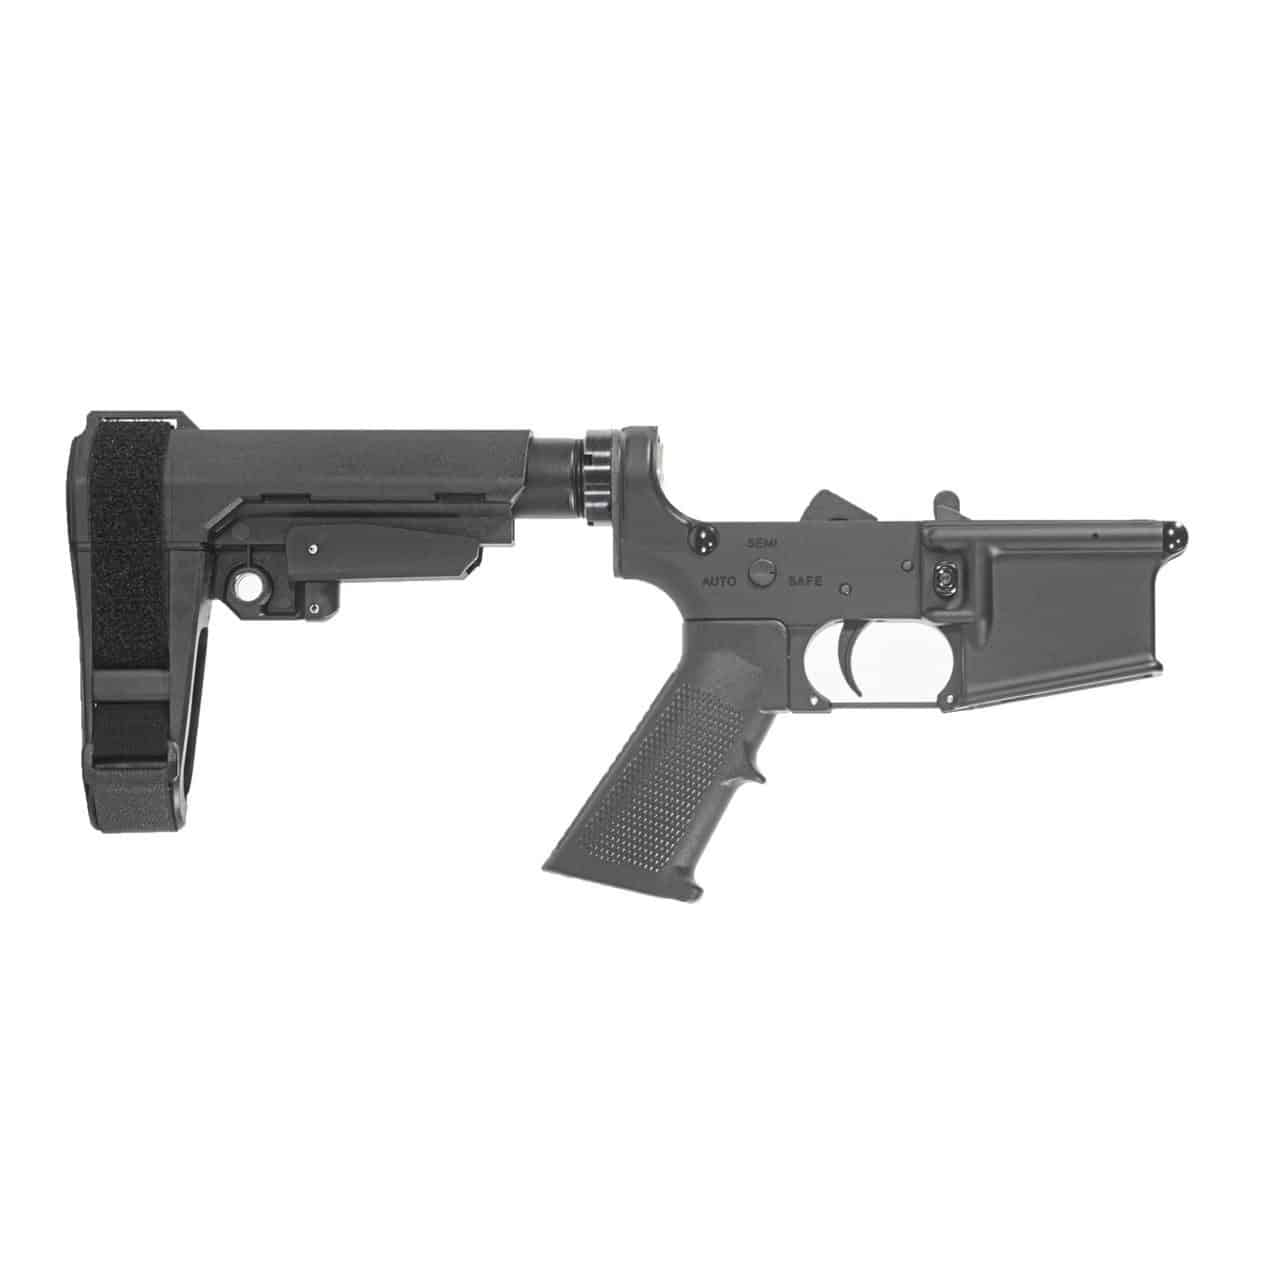 AR15  M4 PISTOL LOWER RECEIVER, ANDRO CORP, SB TACTICAL SBA3 PISTOL BRACE